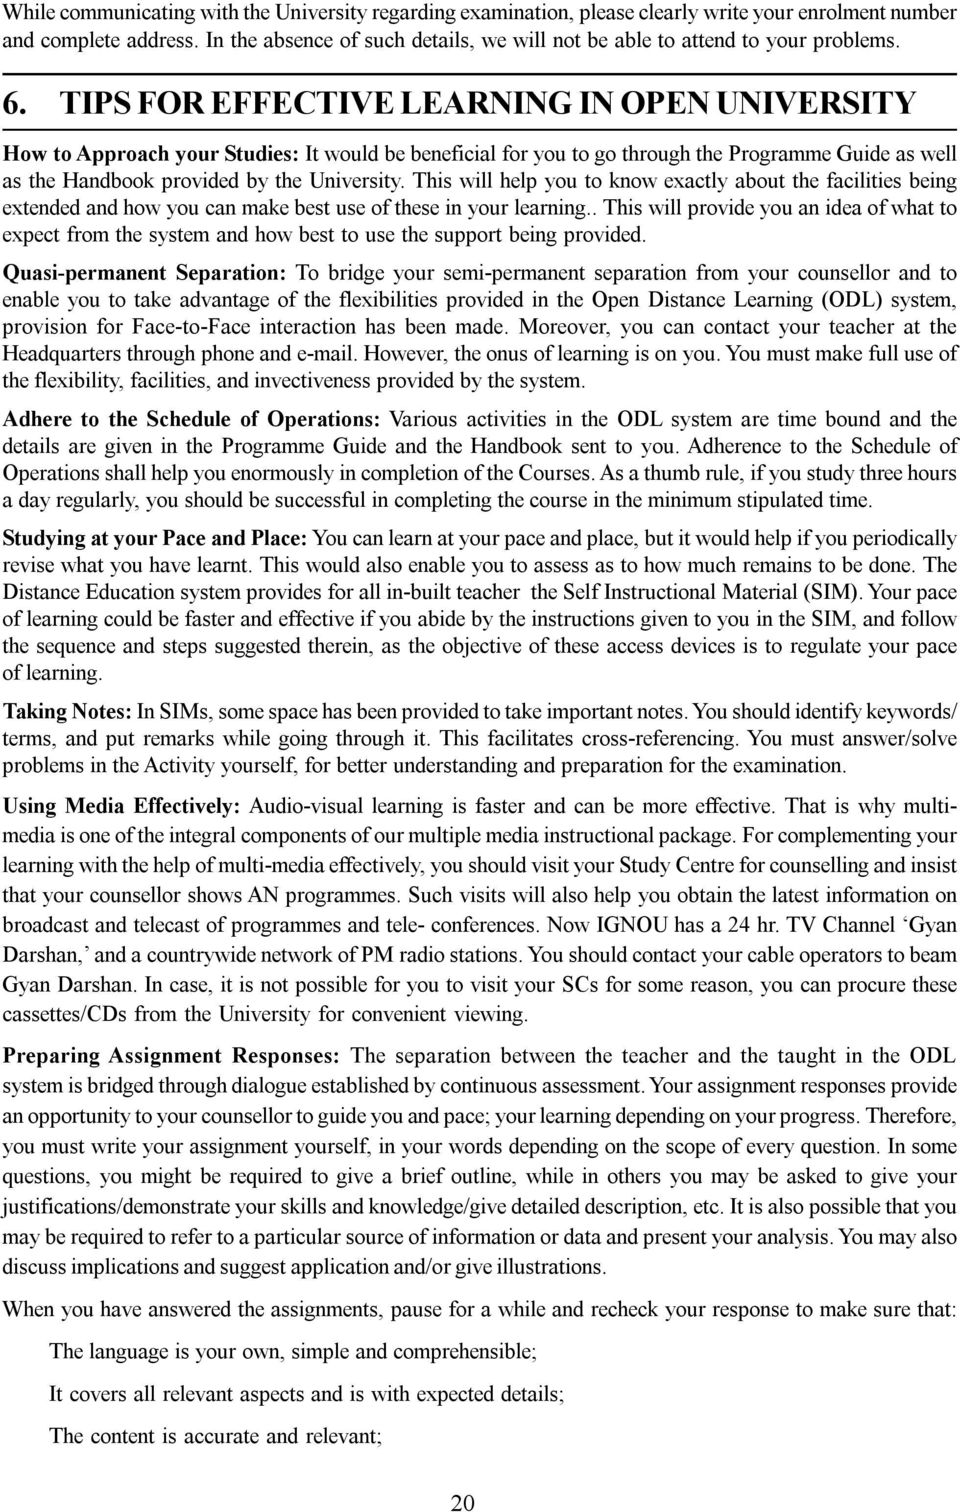 american history introduction essay The effect of chinese immigration in america during the mid to late 1800's, the united states of america underwent a crucial era of expansion and industrialization that many historians recognize as the start of major growth and transformation into the sovereign country that america is today.